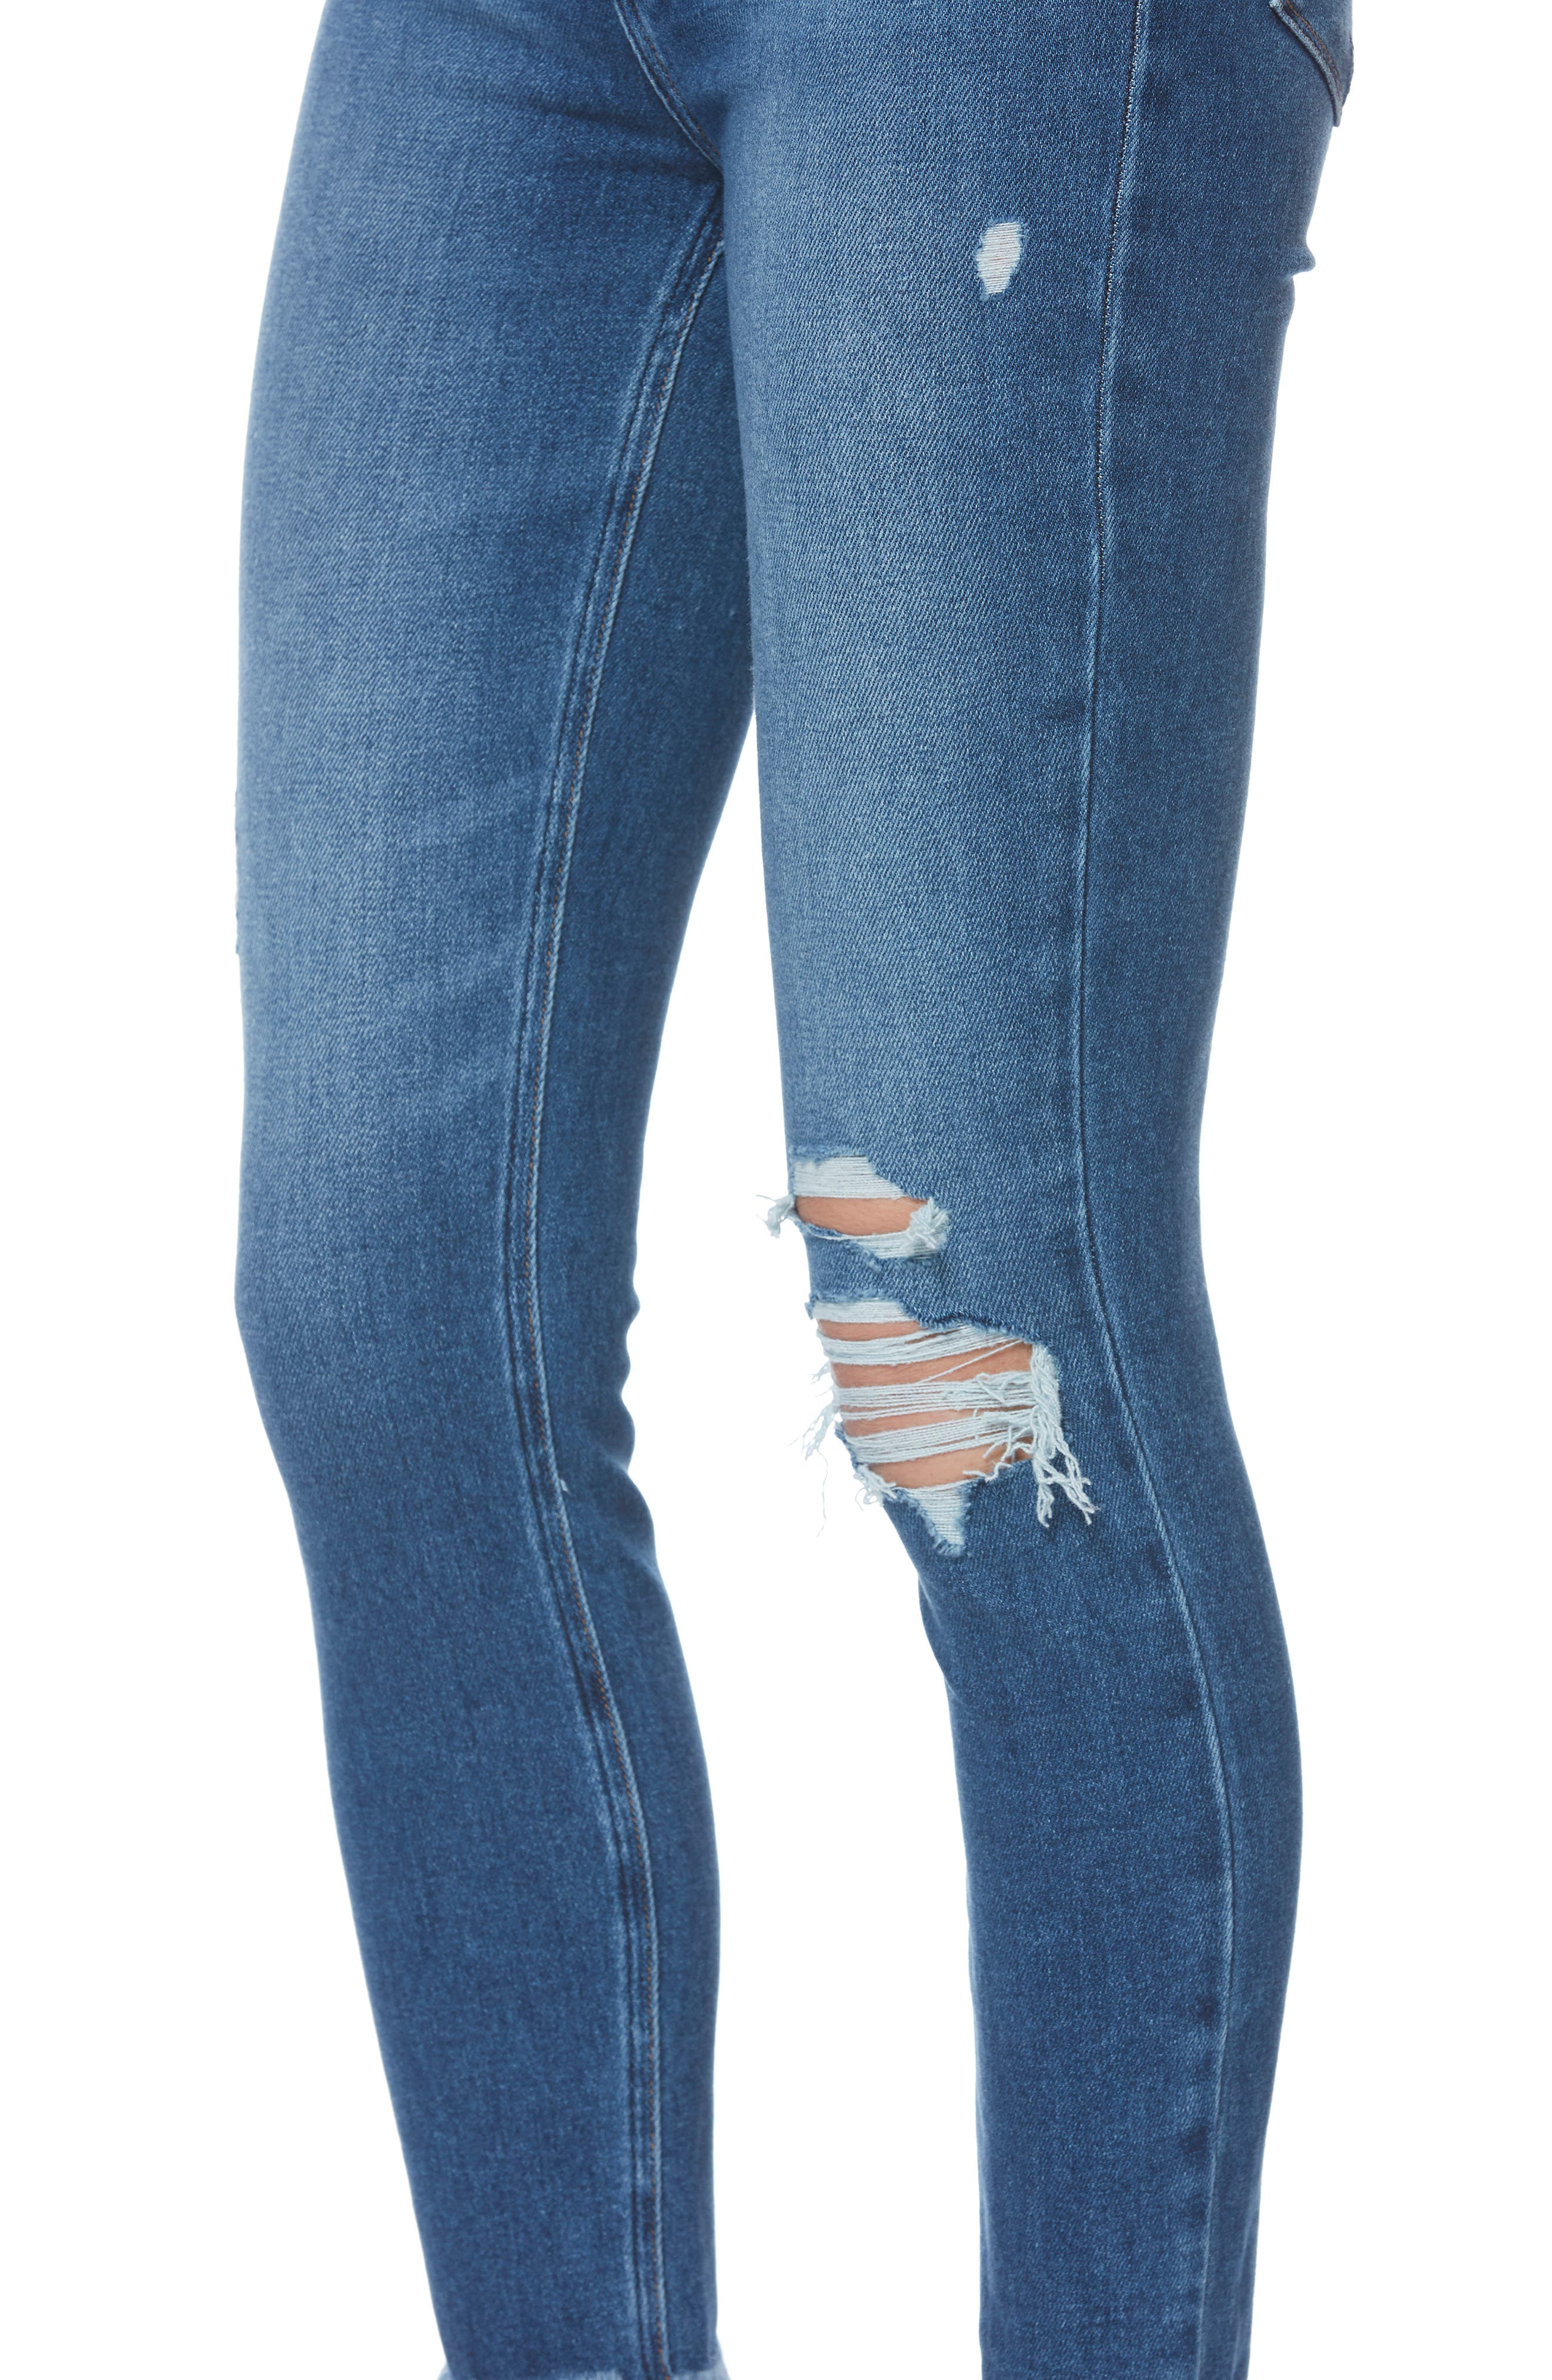 PAIGE,                             Margot High Waist Crop Skinny Jeans,                             Alternate thumbnail 5, color,                             ALESSIO DESTRUCTED